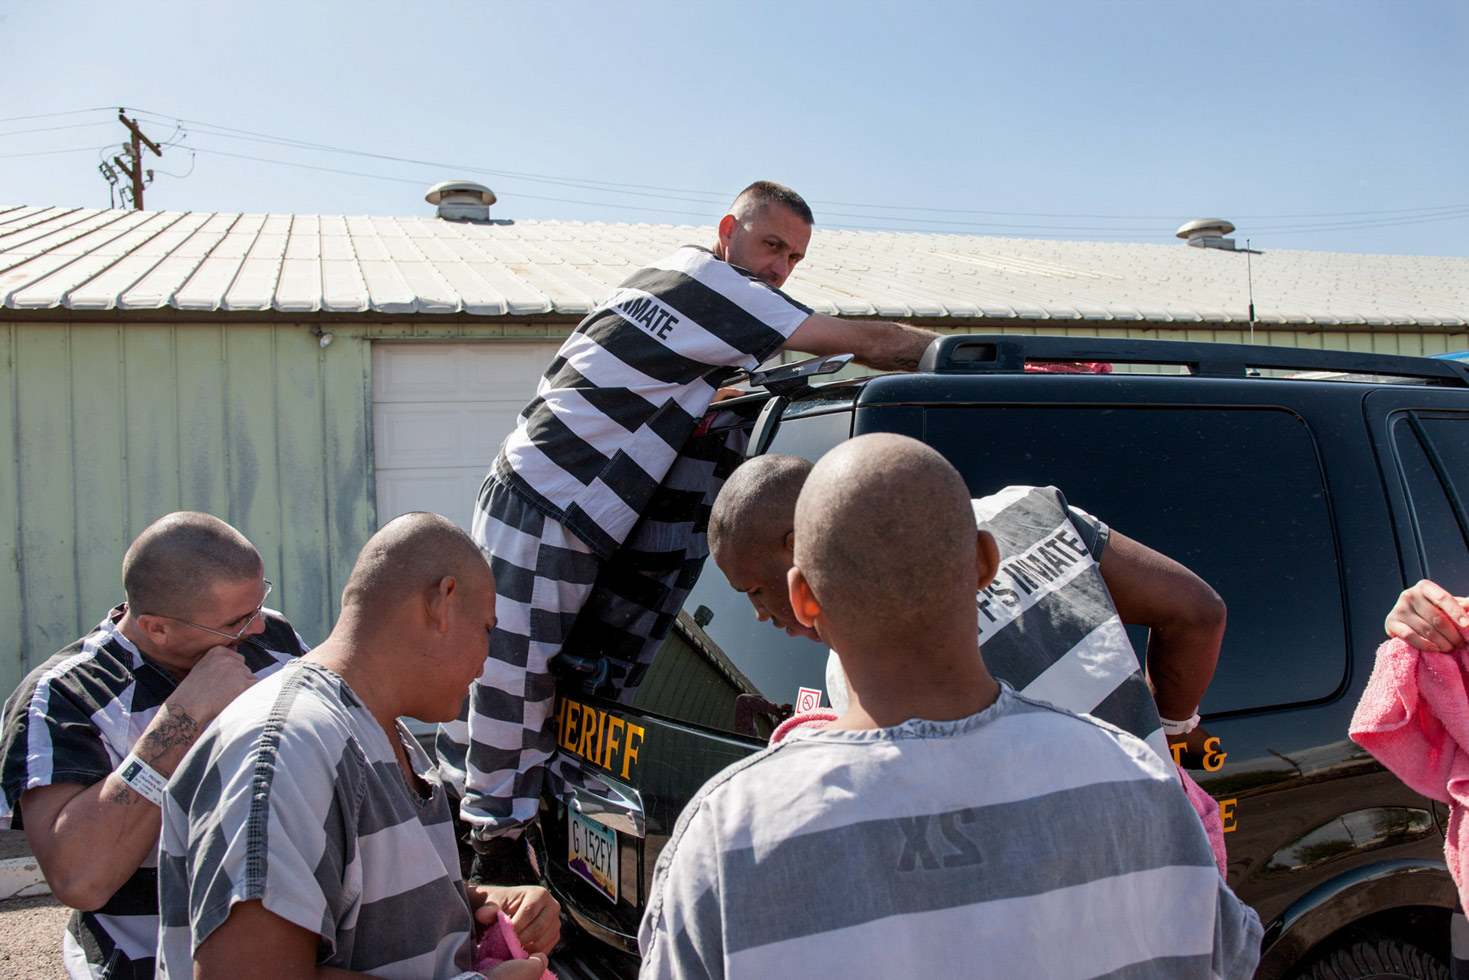 An inmate looks toward the camera as he cleans the guard's SUV.